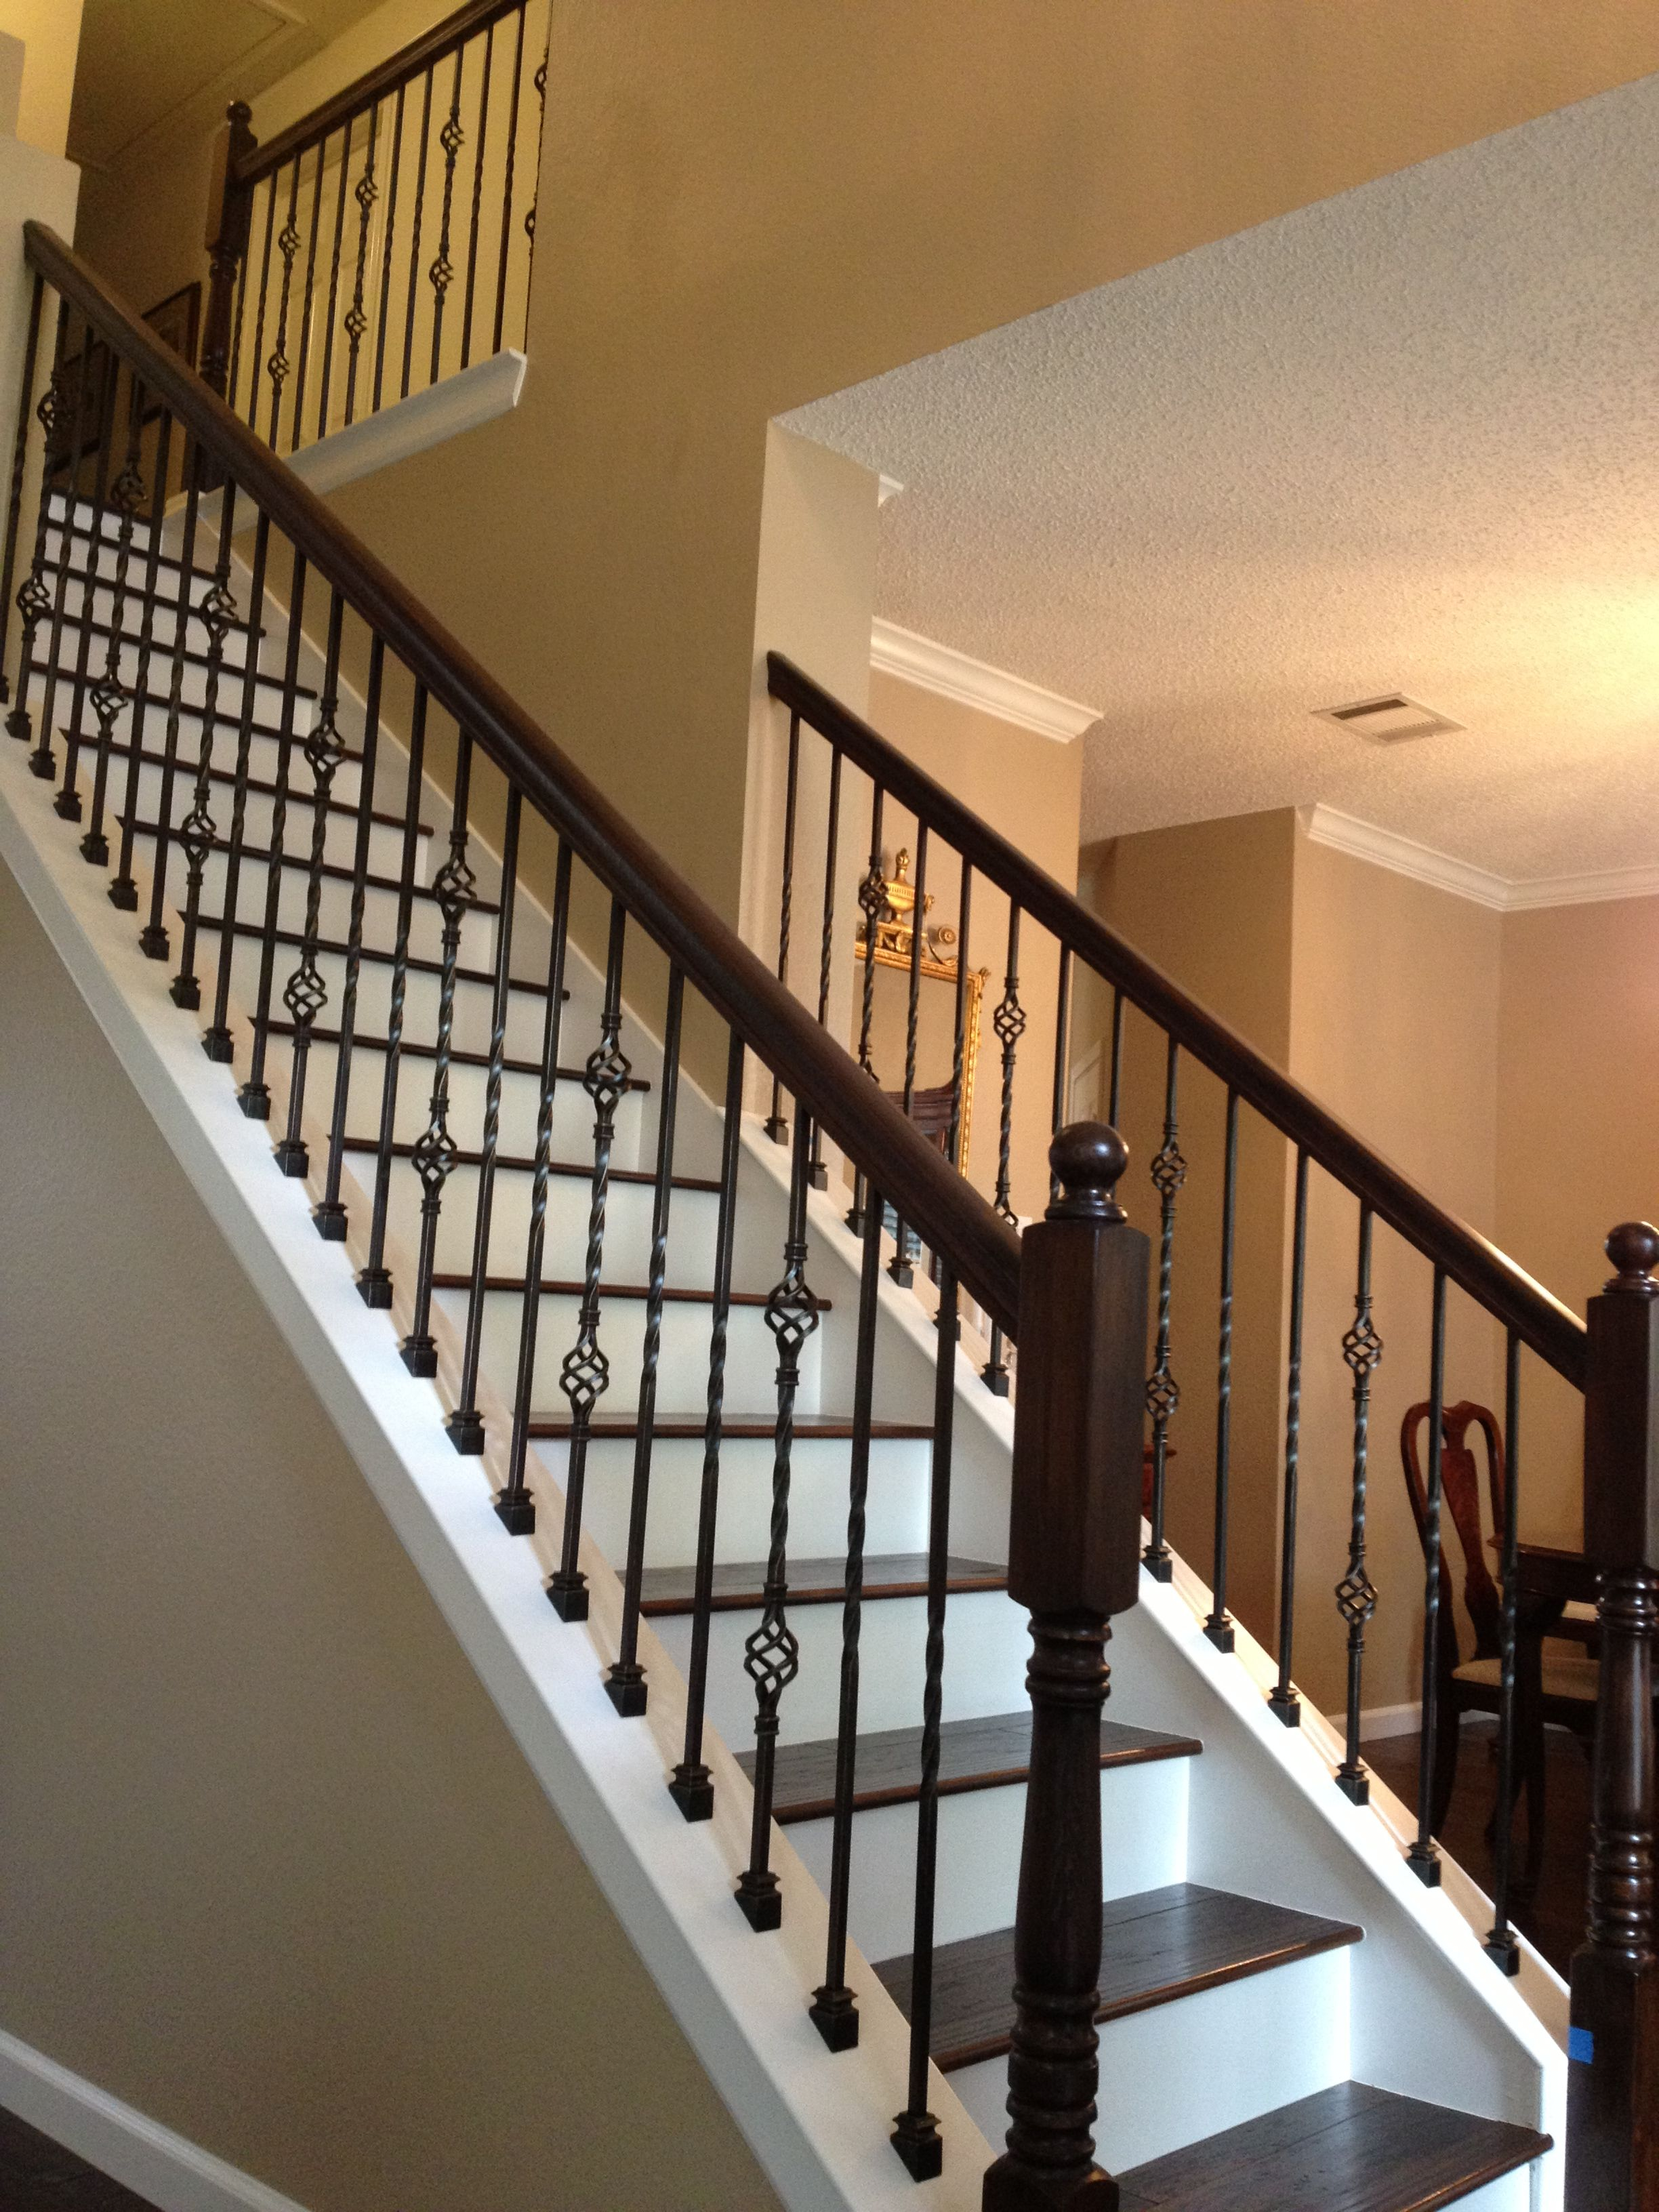 Wrought Iron Balusters With Wood Treads Jpg 2448 3264 Stair Railing Makeover Wrought Iron Staircase Interior Stair Railing